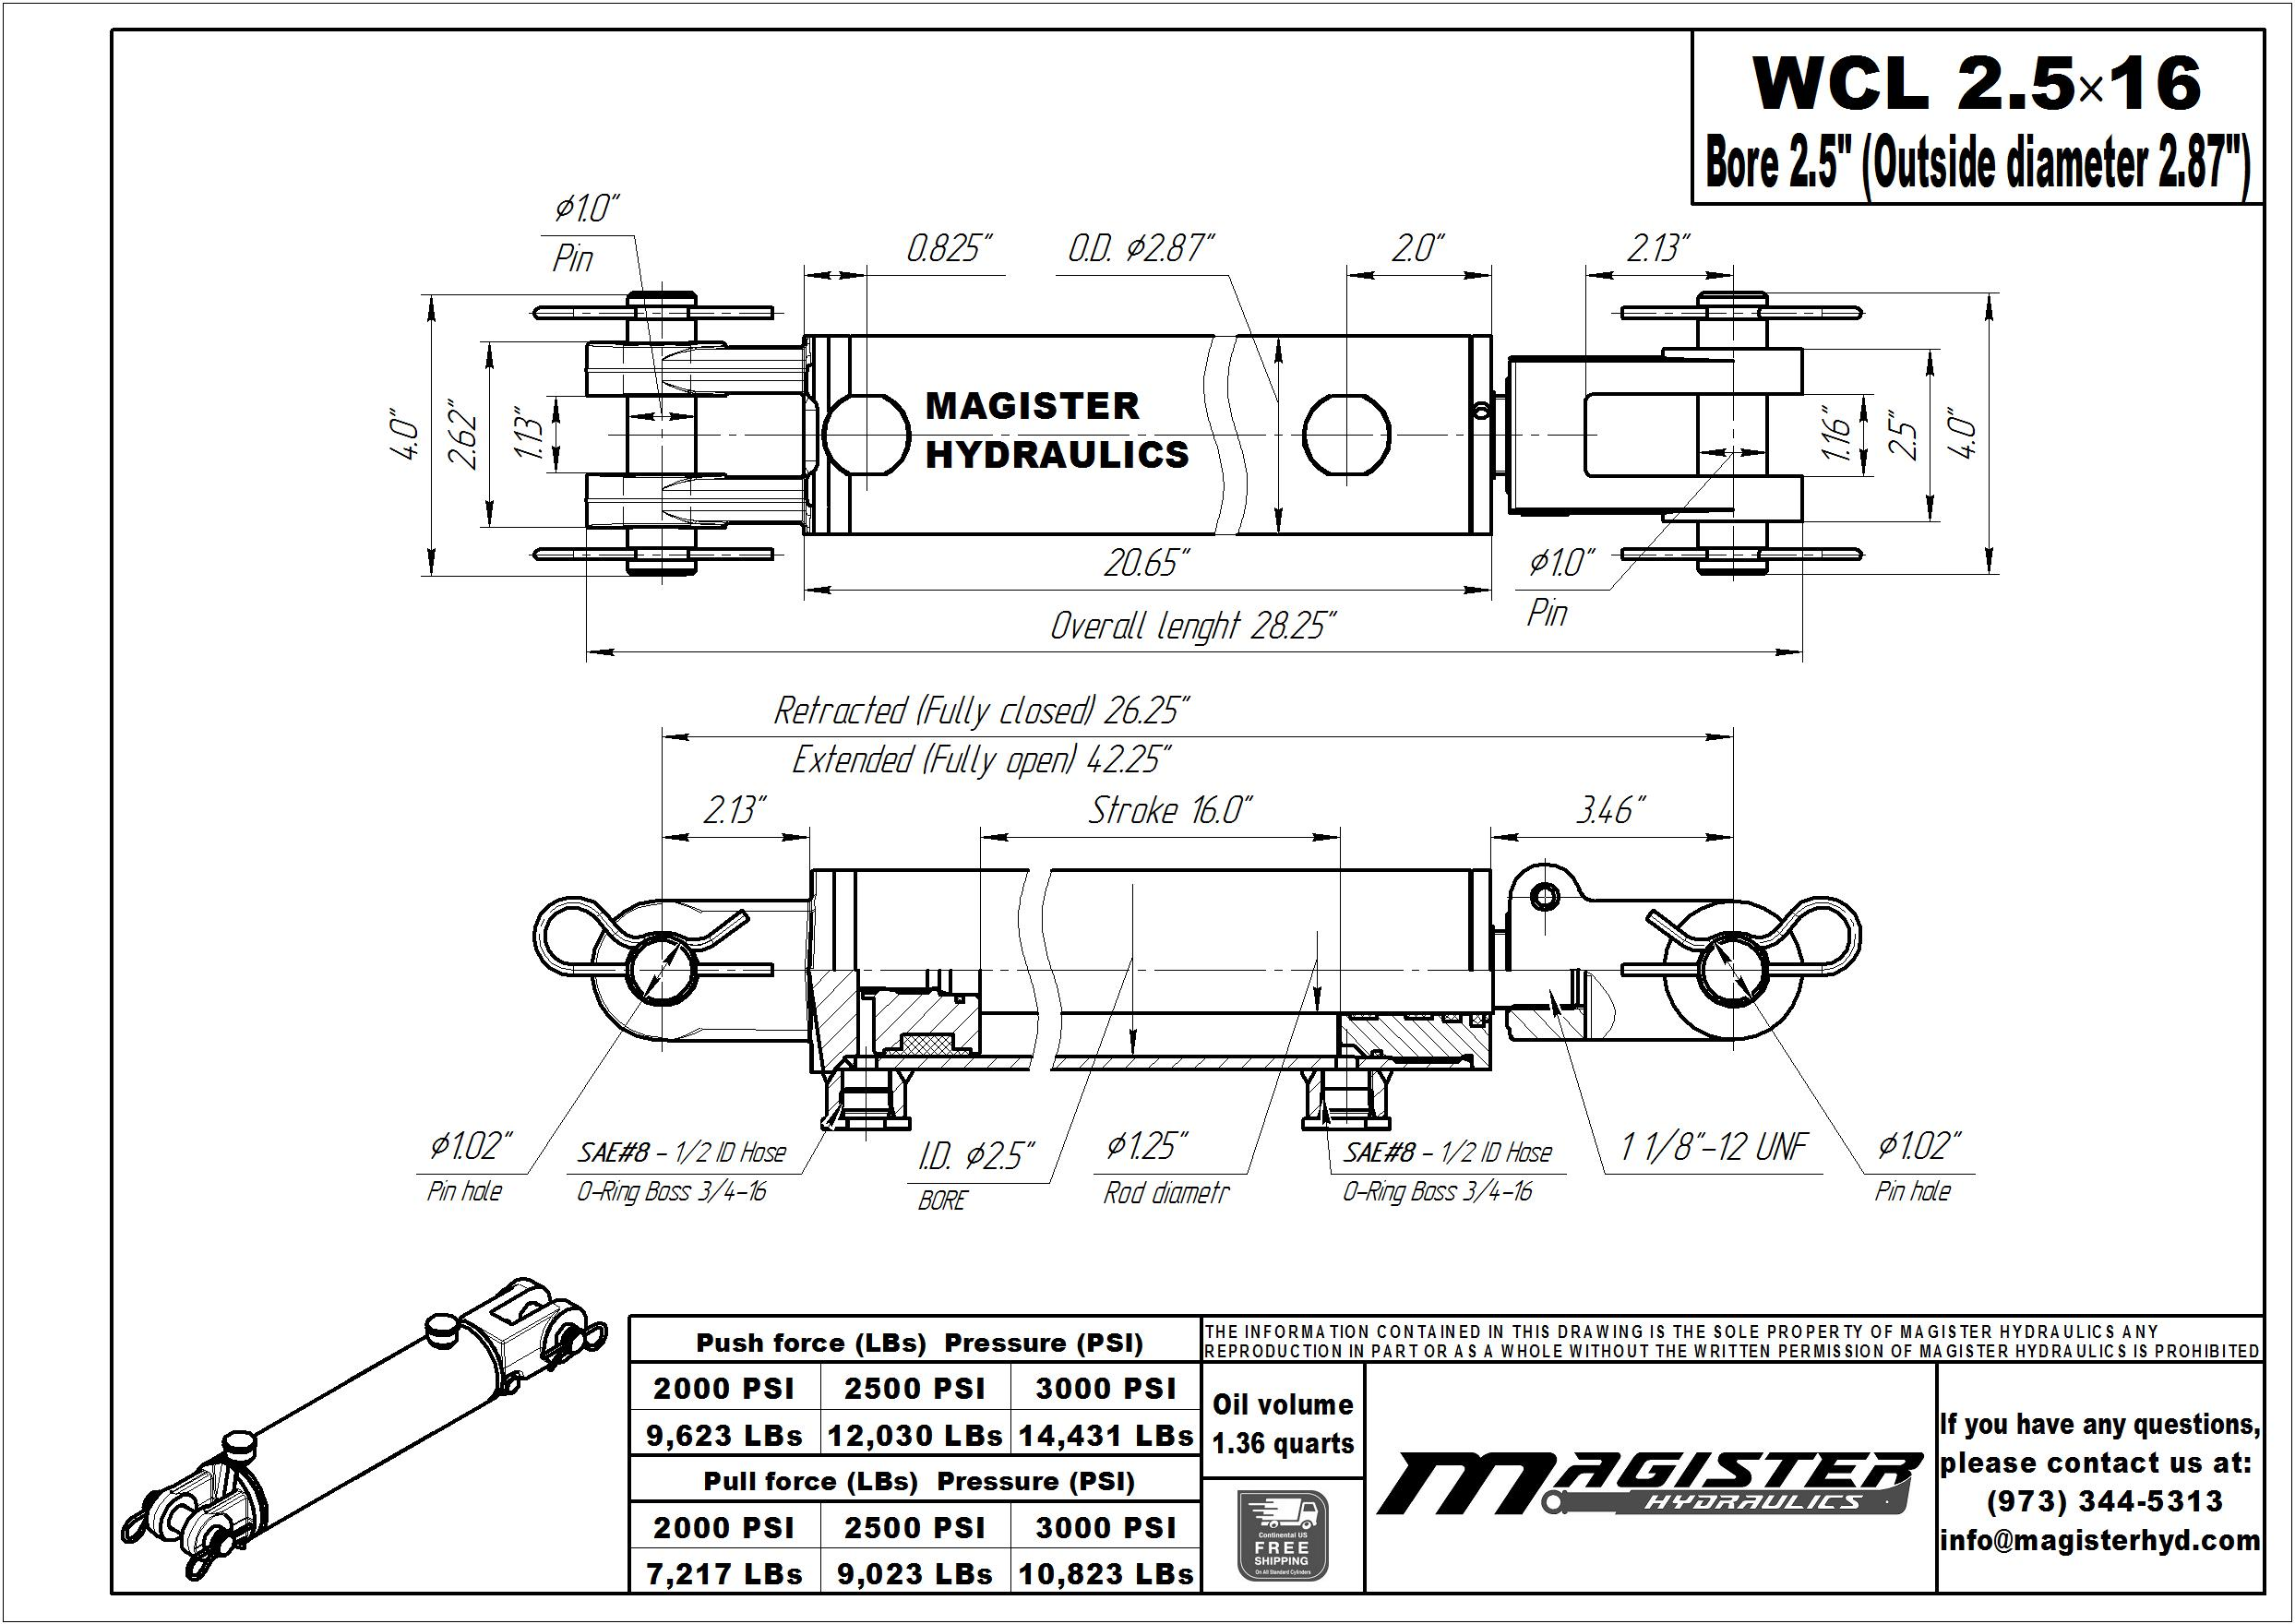 2.5 bore x 16 stroke hydraulic cylinder, welded clevis double acting cylinder   Magister Hydraulics